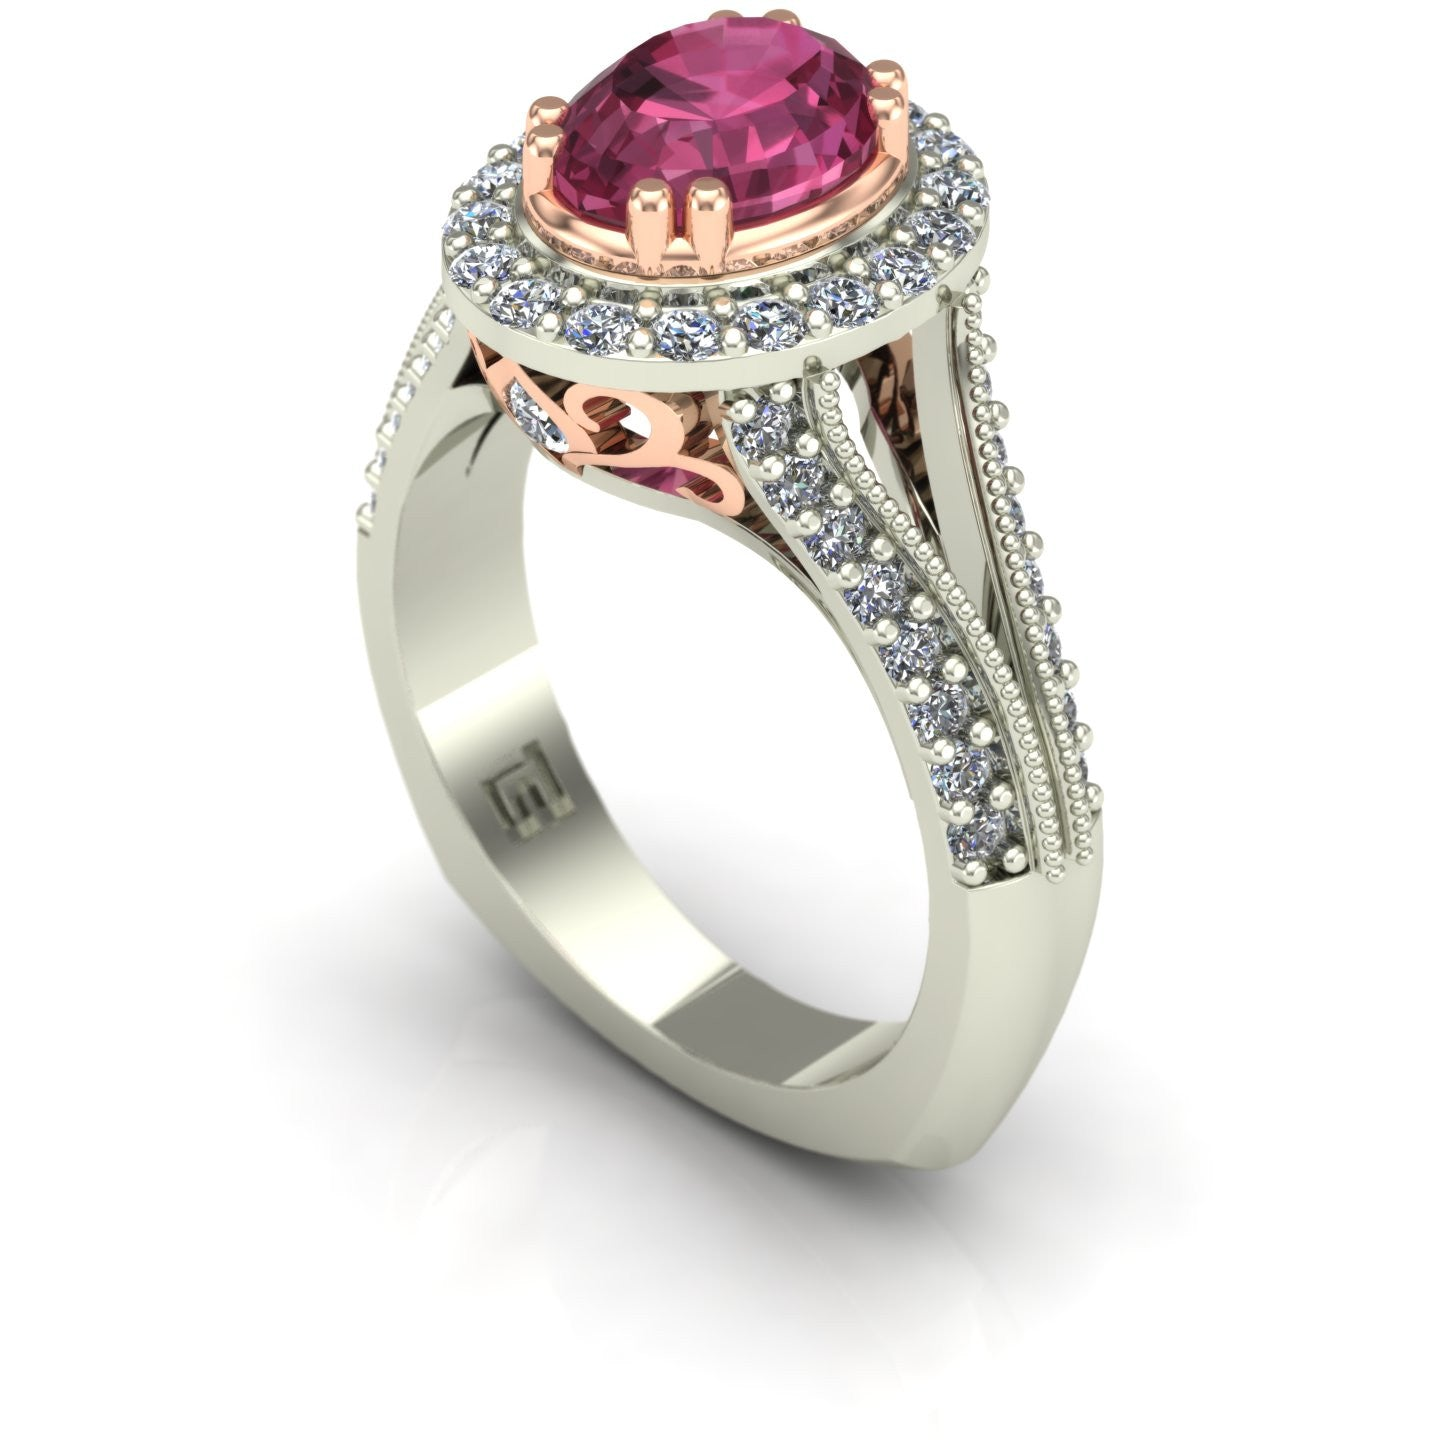 Pink tourmaline and diamond oval scroll ring in 14k rose and white gold